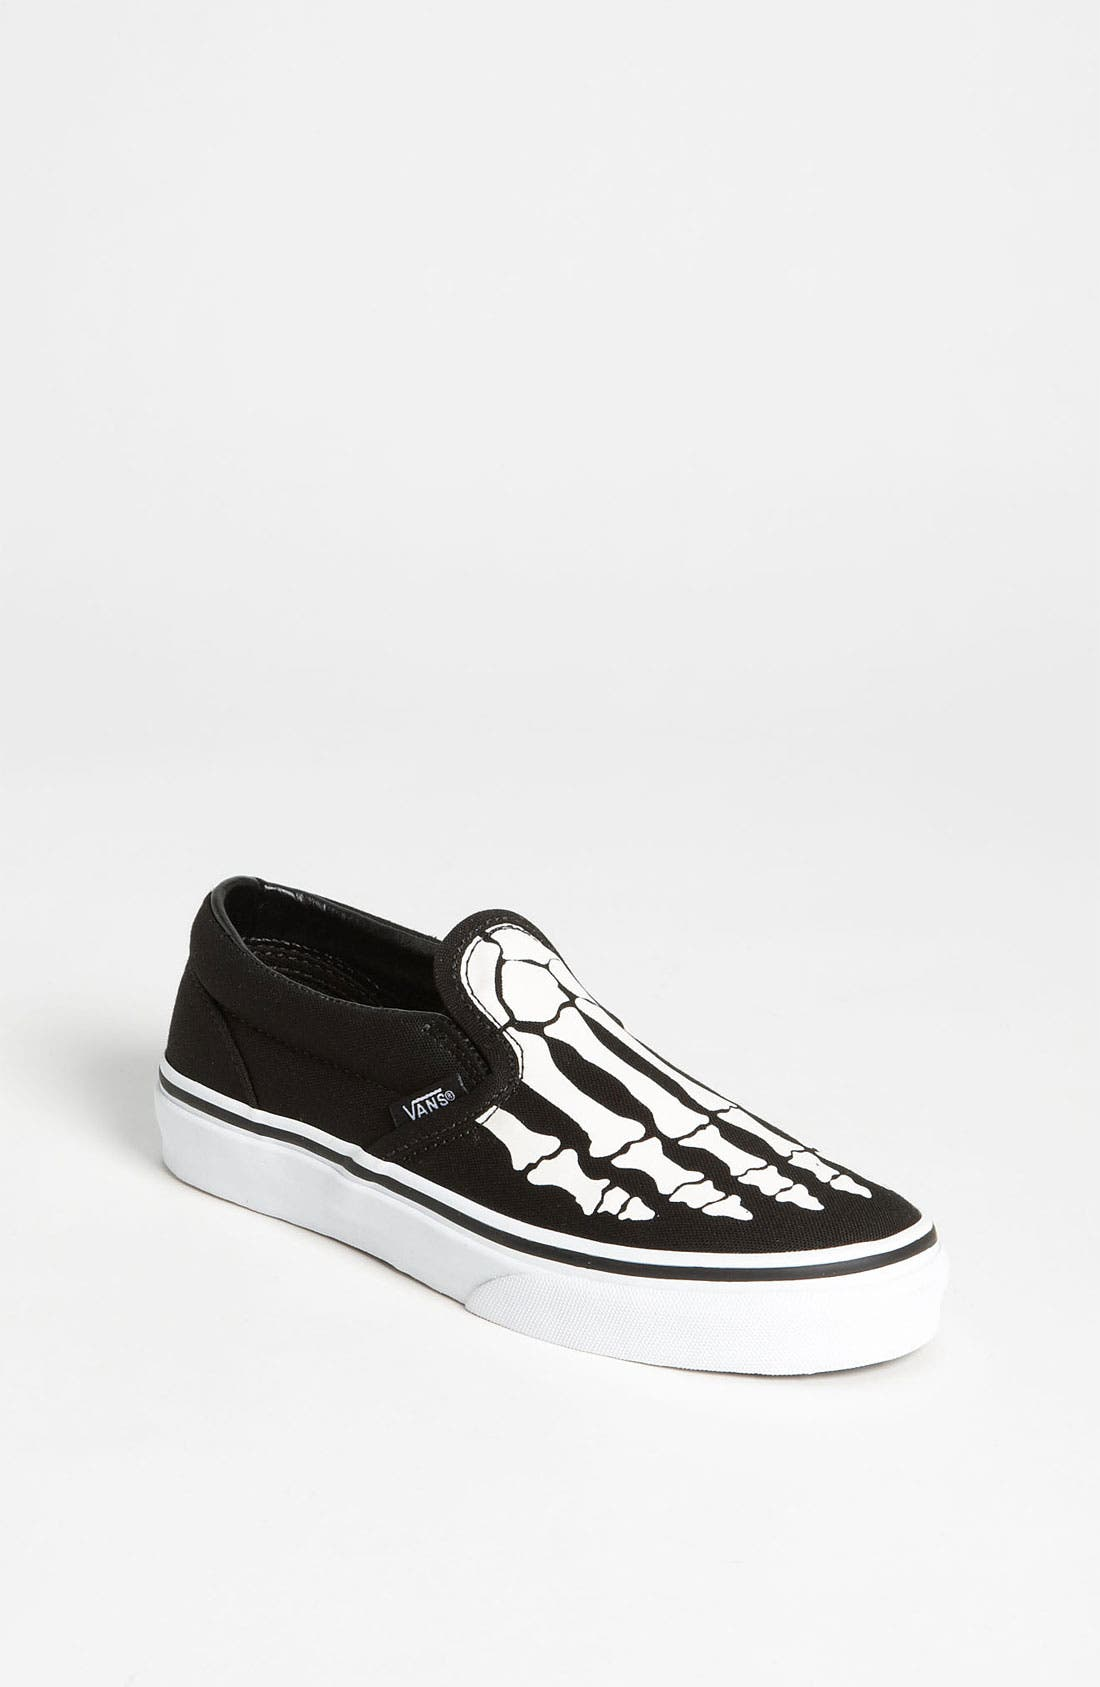 Main Image - Vans 'Classic - Glow In the Dark' Slip-On (Toddler, Little Kid & Big Kid)